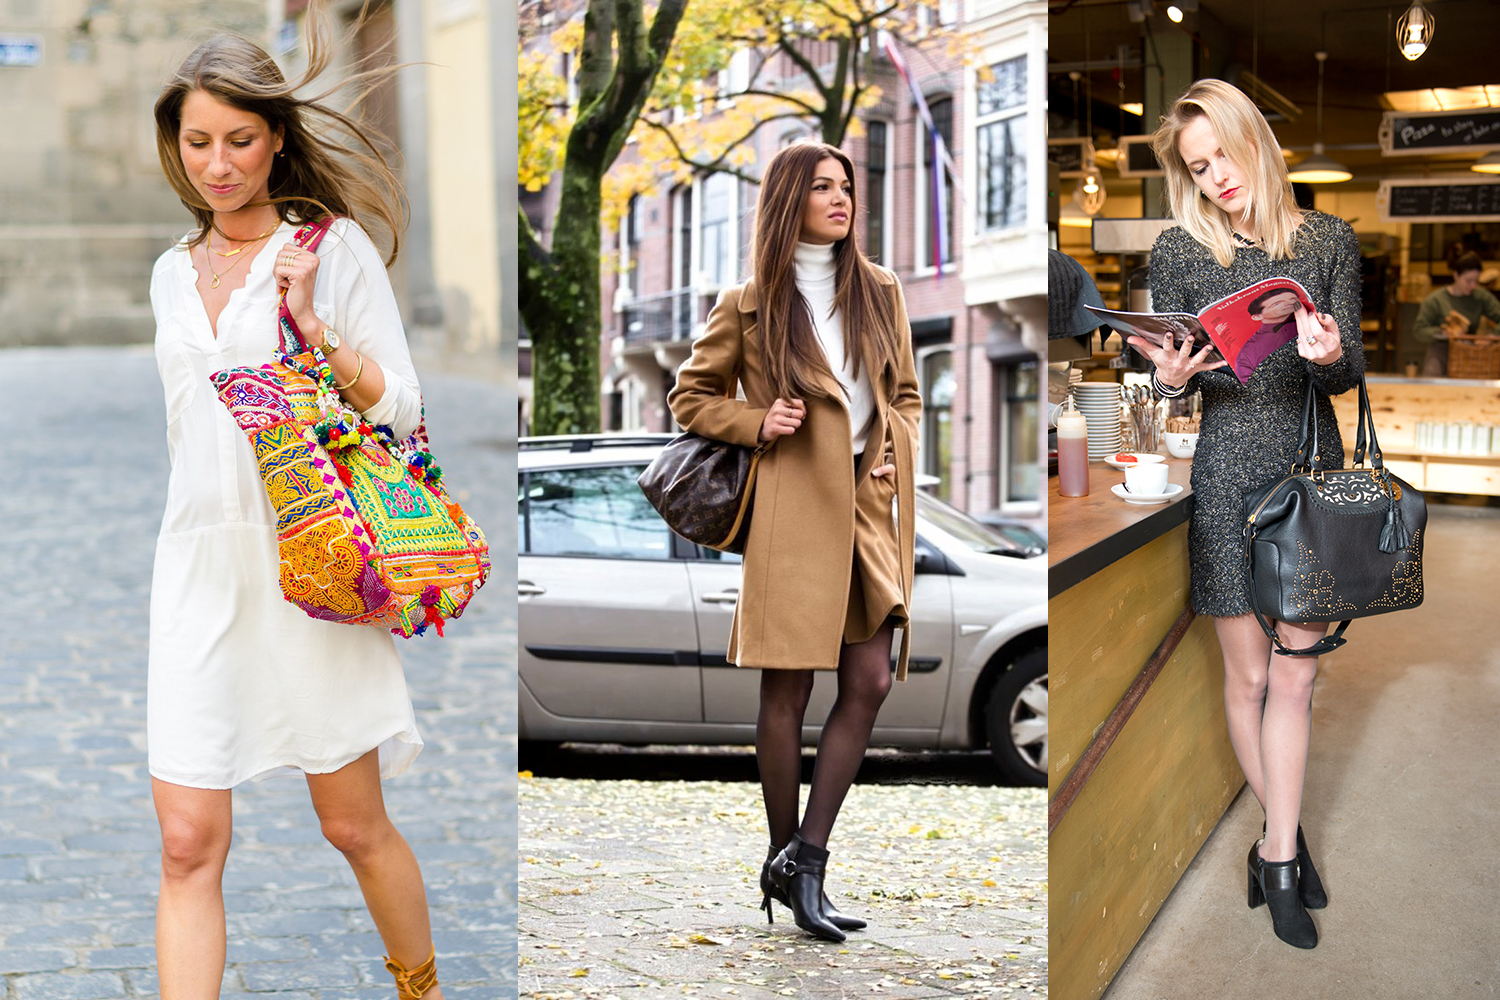 Bag at you - Fashion blog - What your bag says about your personality - Shopper